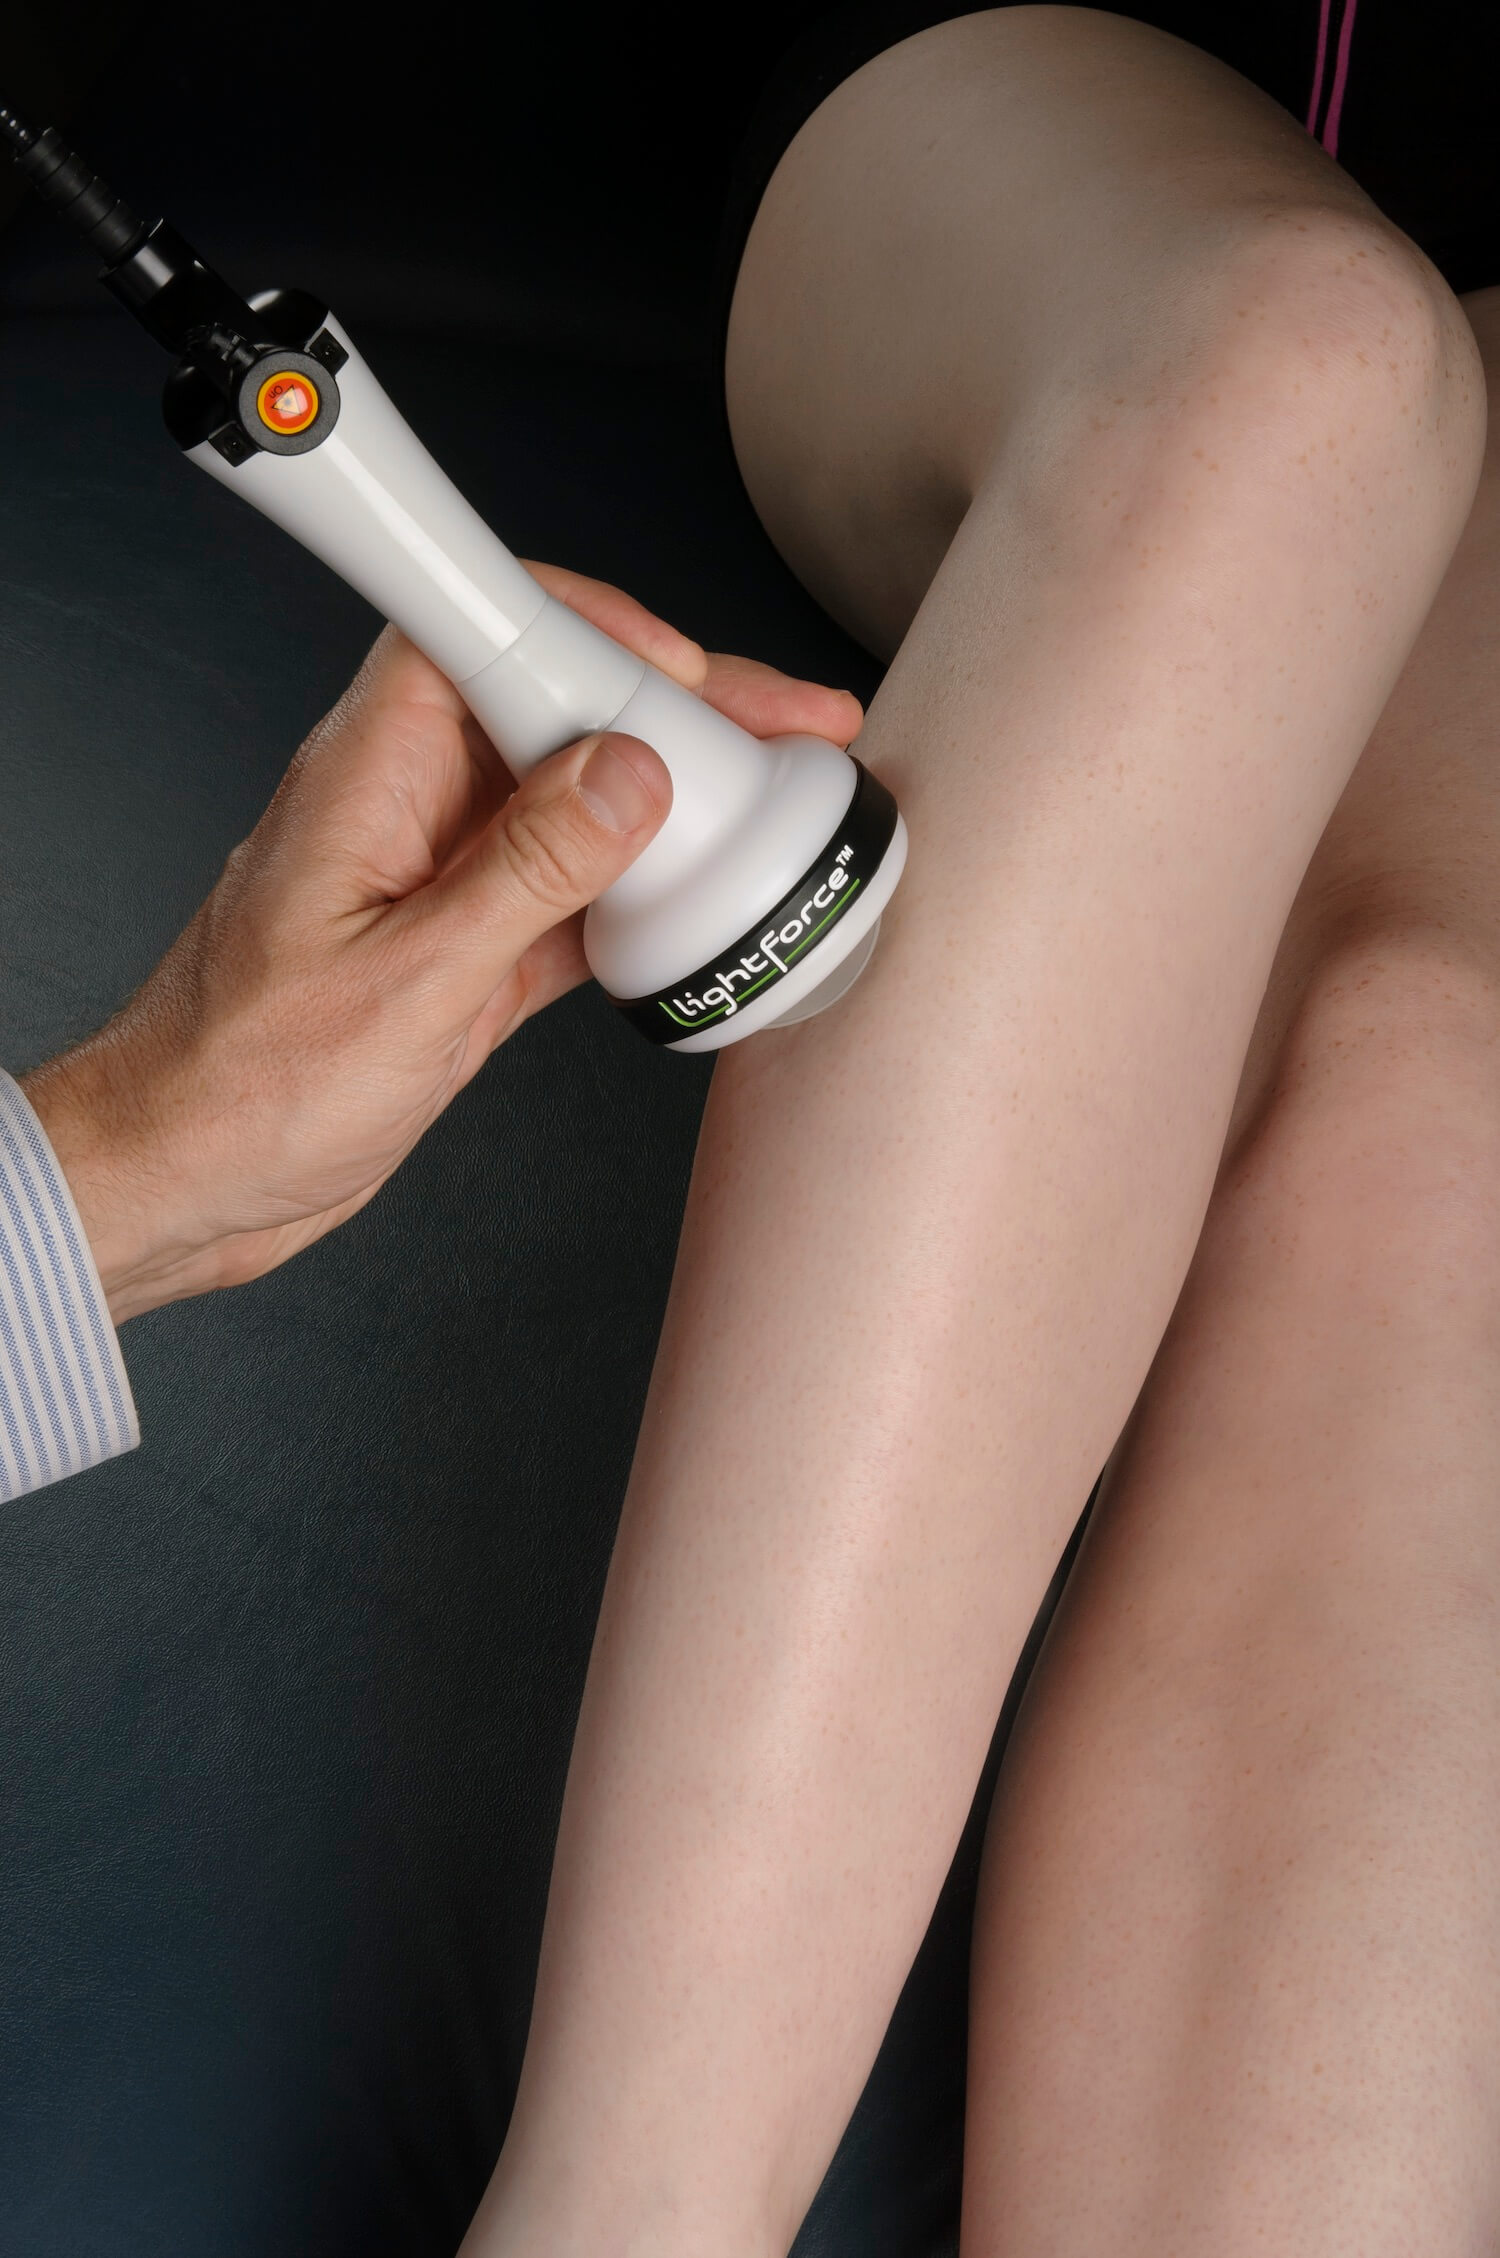 Treatment Shin Benefits of Laser Therapy